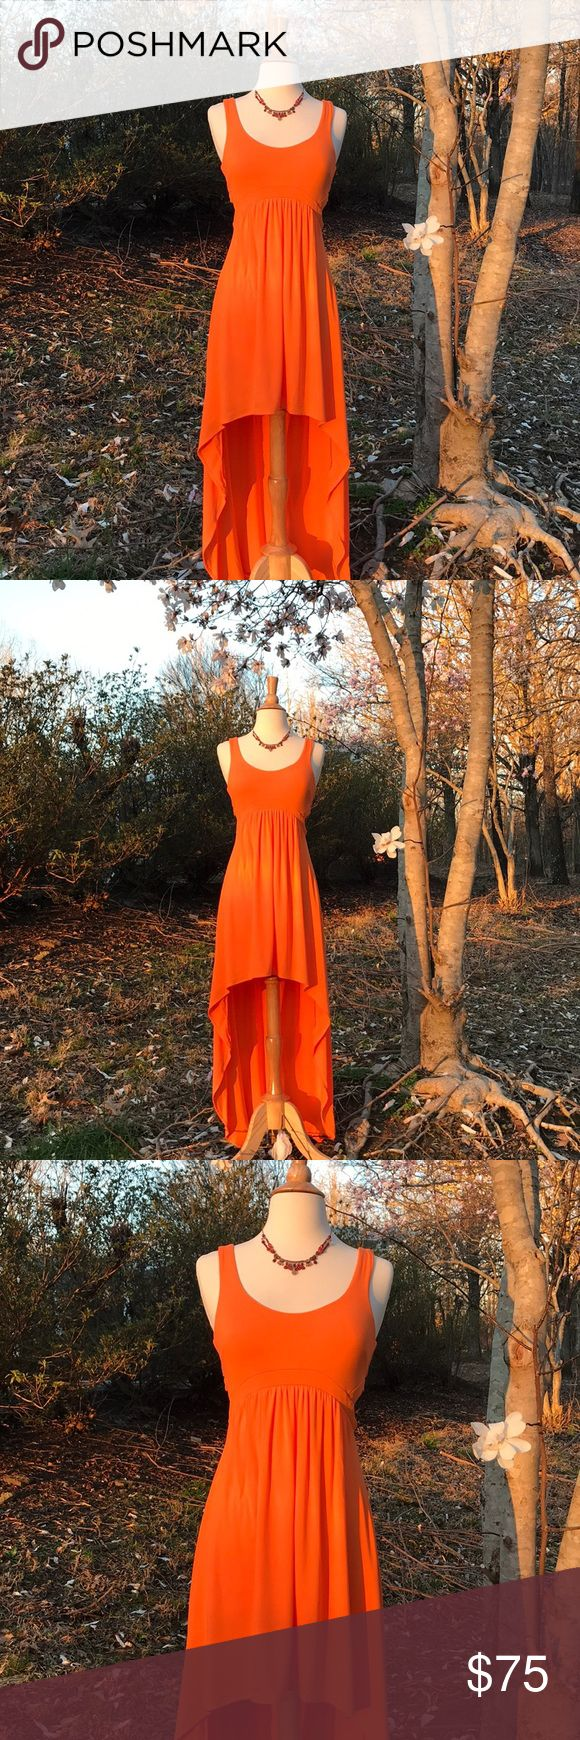 """🍑BEBE HIGH LOW CUT OUT WAIST AND BACK DRESS🍑 🍑BEBE HIGH LOW CUT OUT WAIST AND BACK DRESS!🍑. Perfect condition. Size Small Petite. Fabulous dress!!  Pretty bright orange. Sexy cut out at sides of waist and back. 15"""" armpit to armpit. 55"""" from top of shoulder to bottom of back. 25"""" from center front neckline to bottom of front hi-lo. Fabric has stretch. 93% Rayon 7% Spandex. You will love this dress!🍑🎉 🌼BUNDLE ITEMS AND PAY SHIPPING ONCE 🌼 💛HAPPY POSHING 💛 🍑ORDERS ARRIVE GIFT…"""